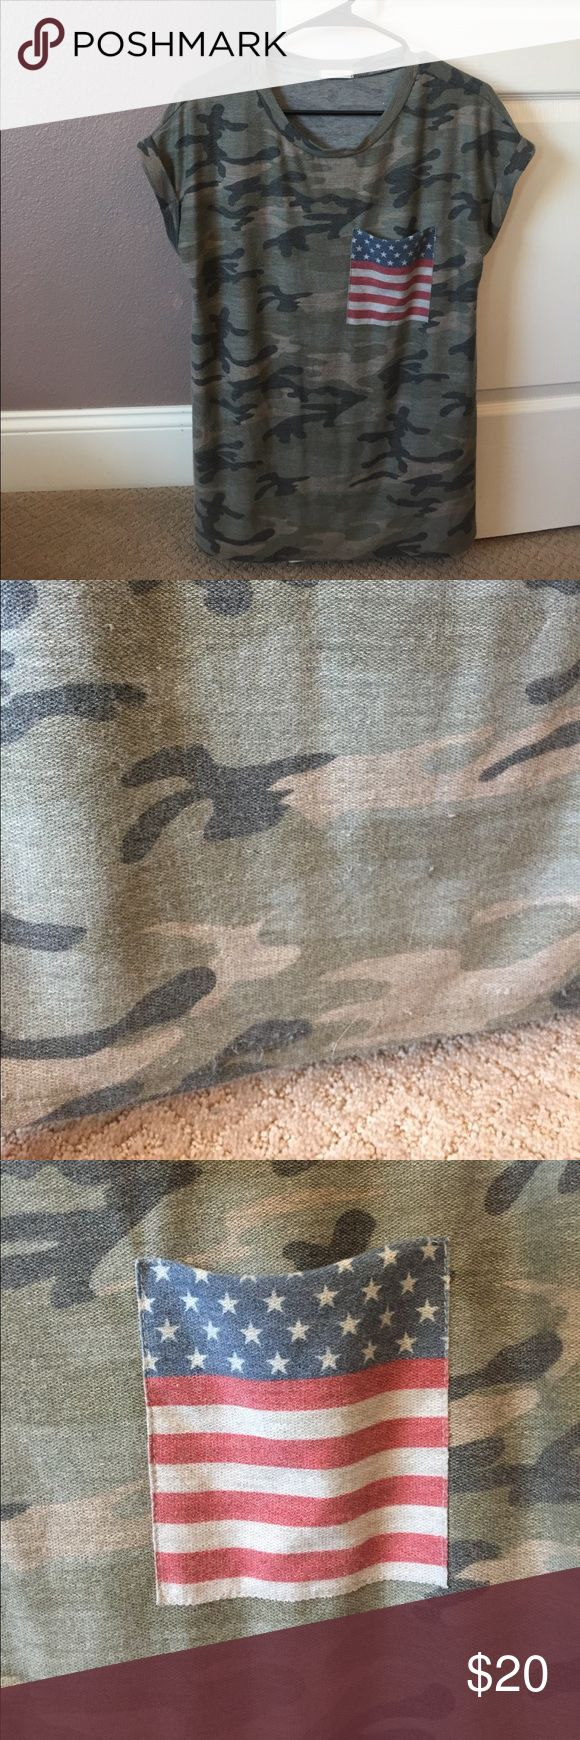 Camo Tee with American Flag Pocket Bought on Poshmark for 4th of July but probably won't wear it again! Like new condition, see pictures for only pilling. Not noticeable when worn. Make me an offer, bundle and save :) Tops Tees - Short Sleeve